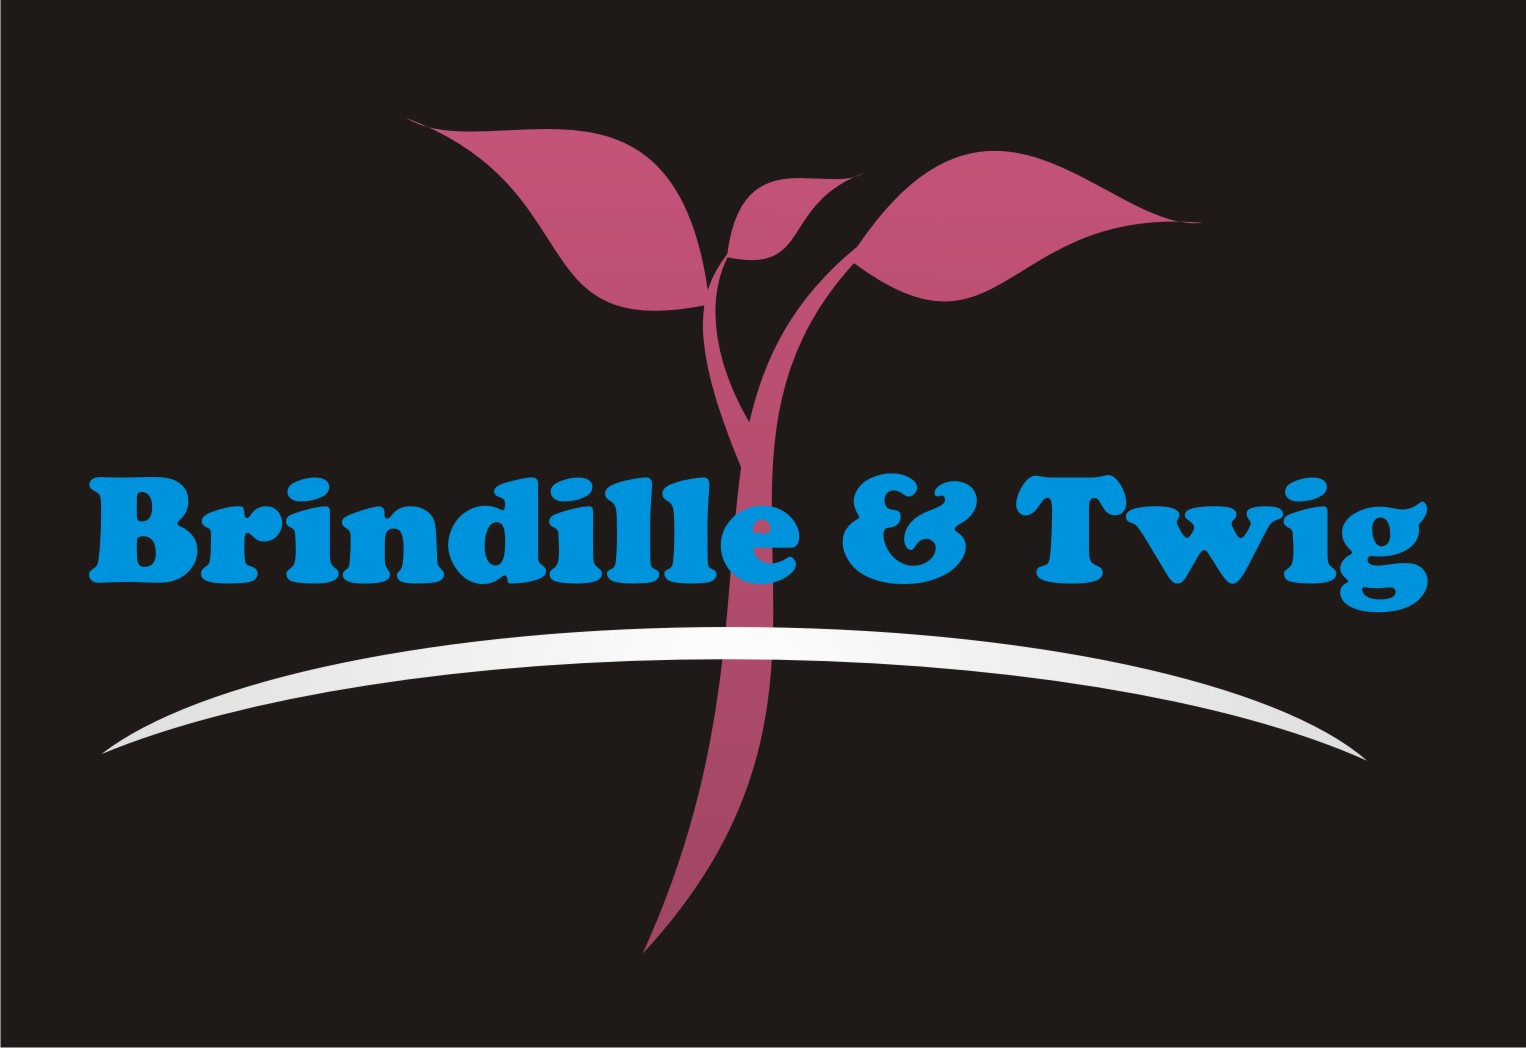 Logo Design by Gaber Barabaraberebere - Entry No. 8 in the Logo Design Contest Logo Design for Brindille & Twig.